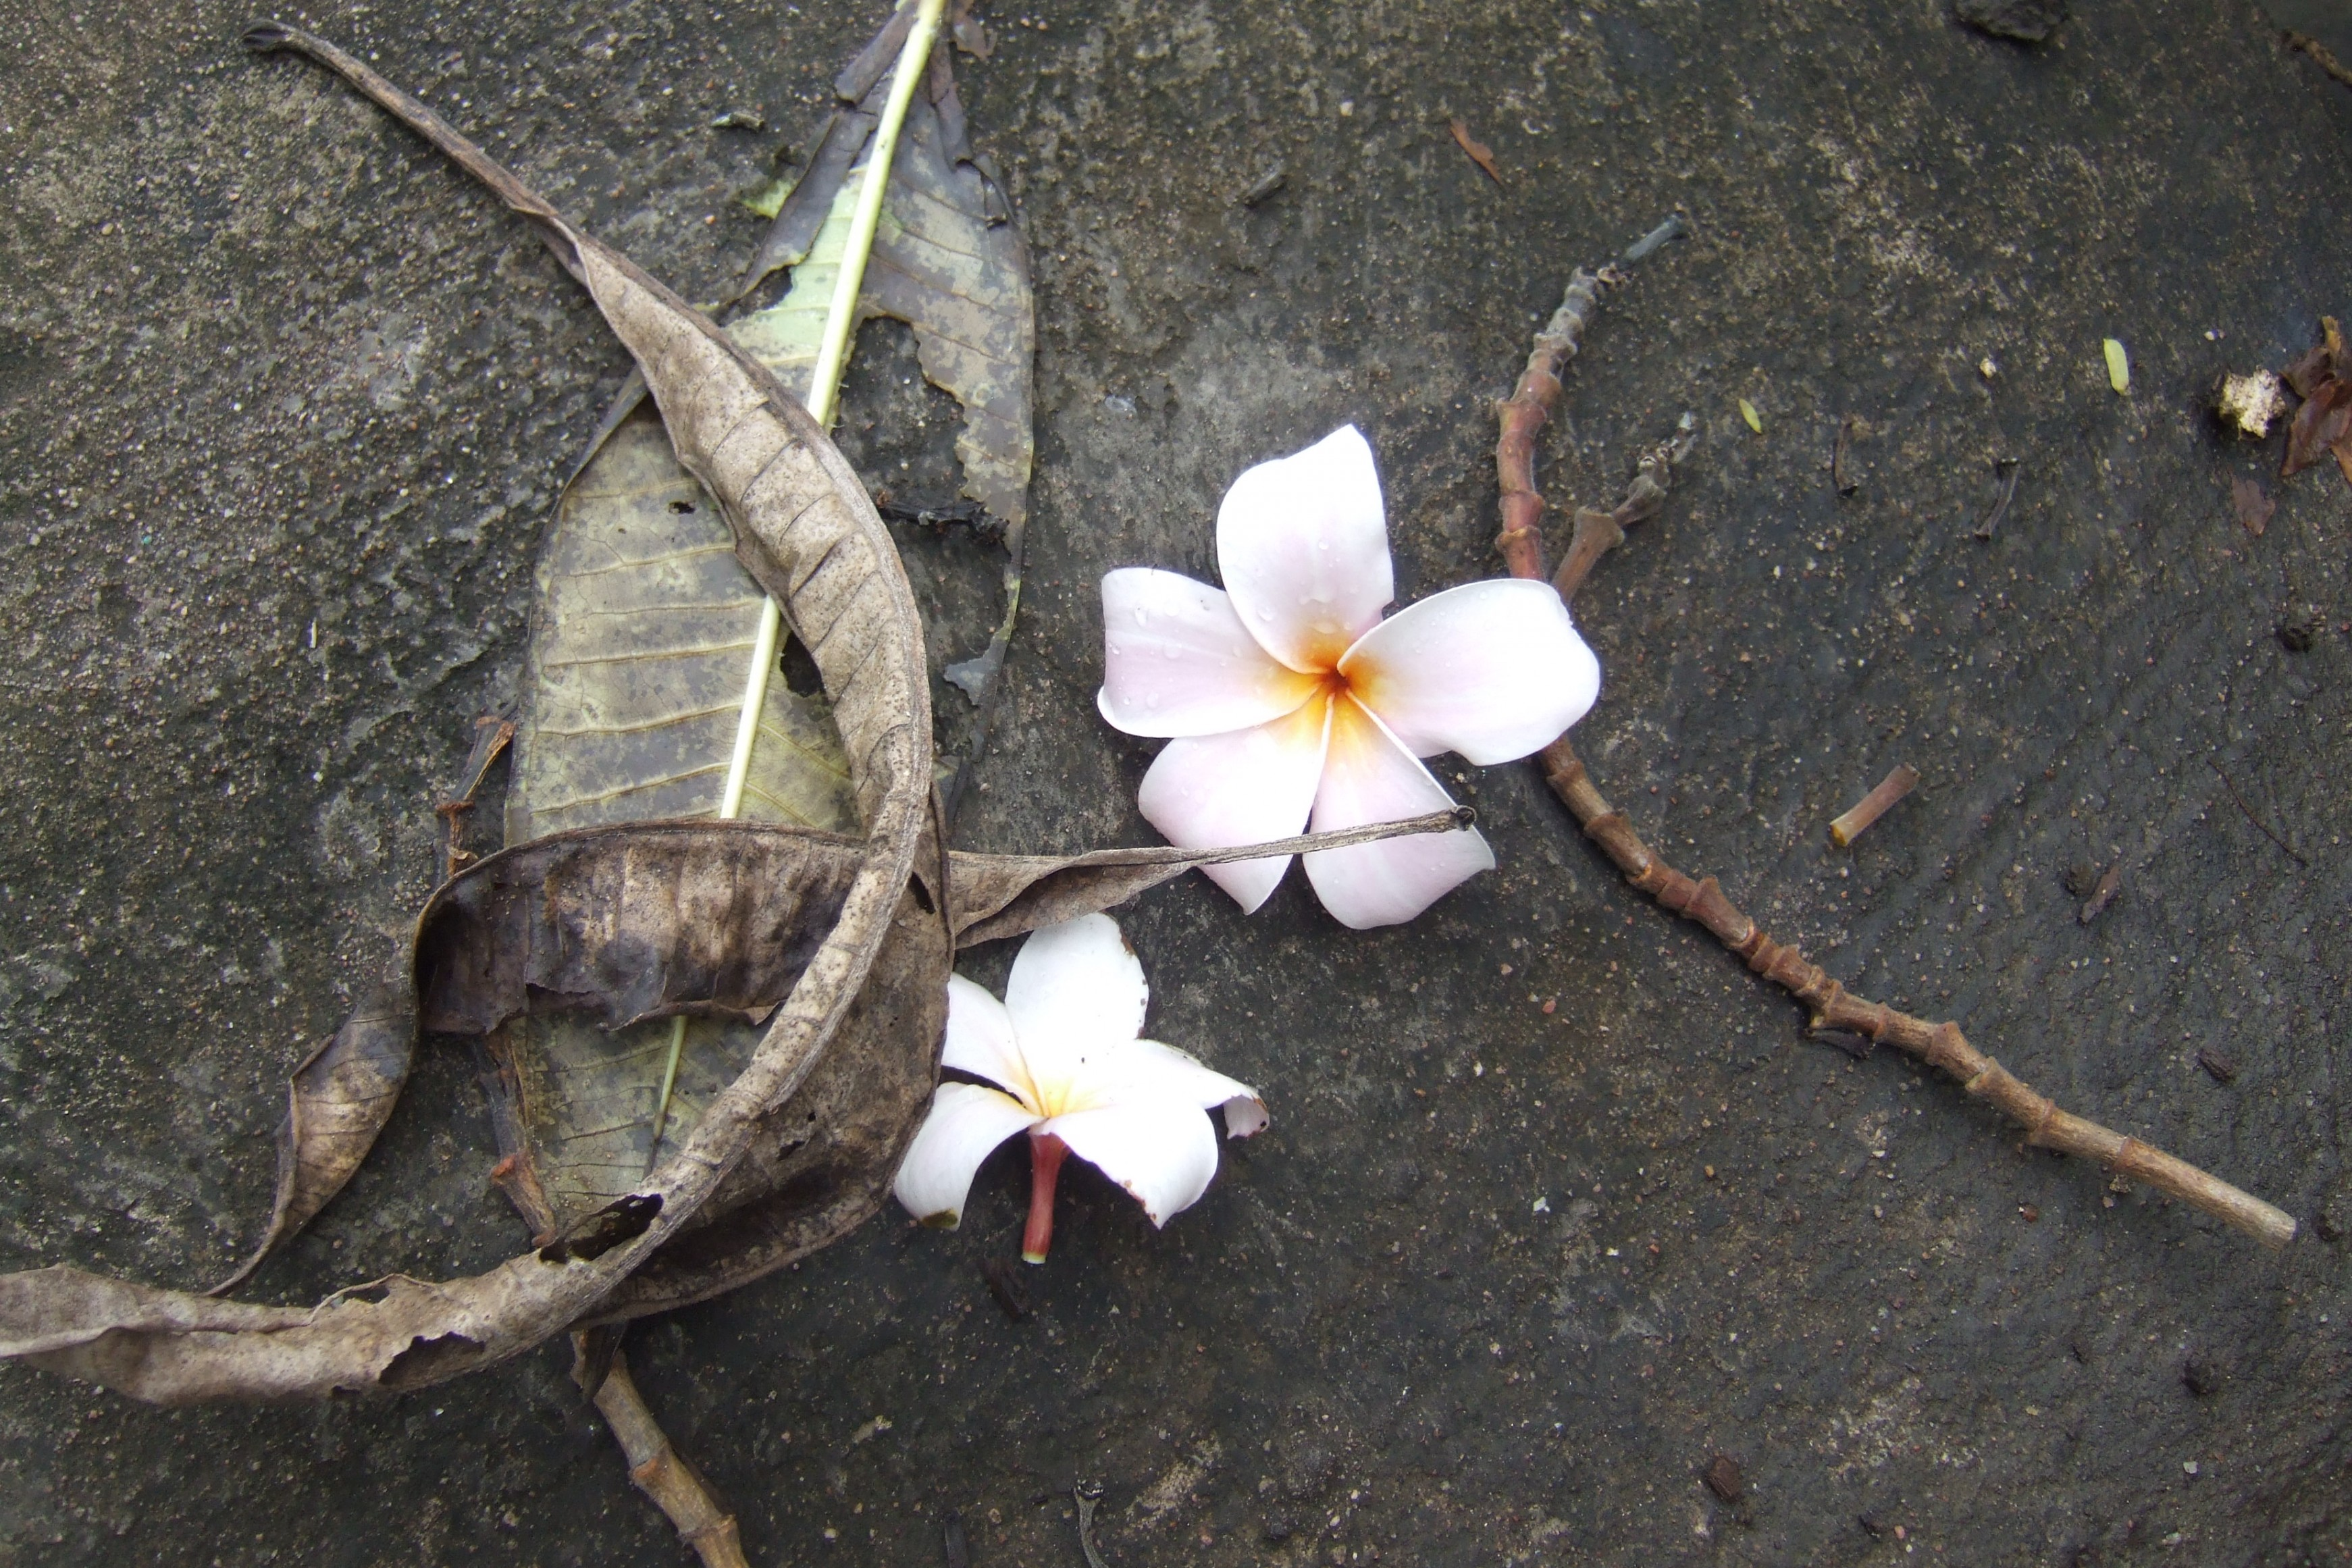 Flowers on the concrete floor